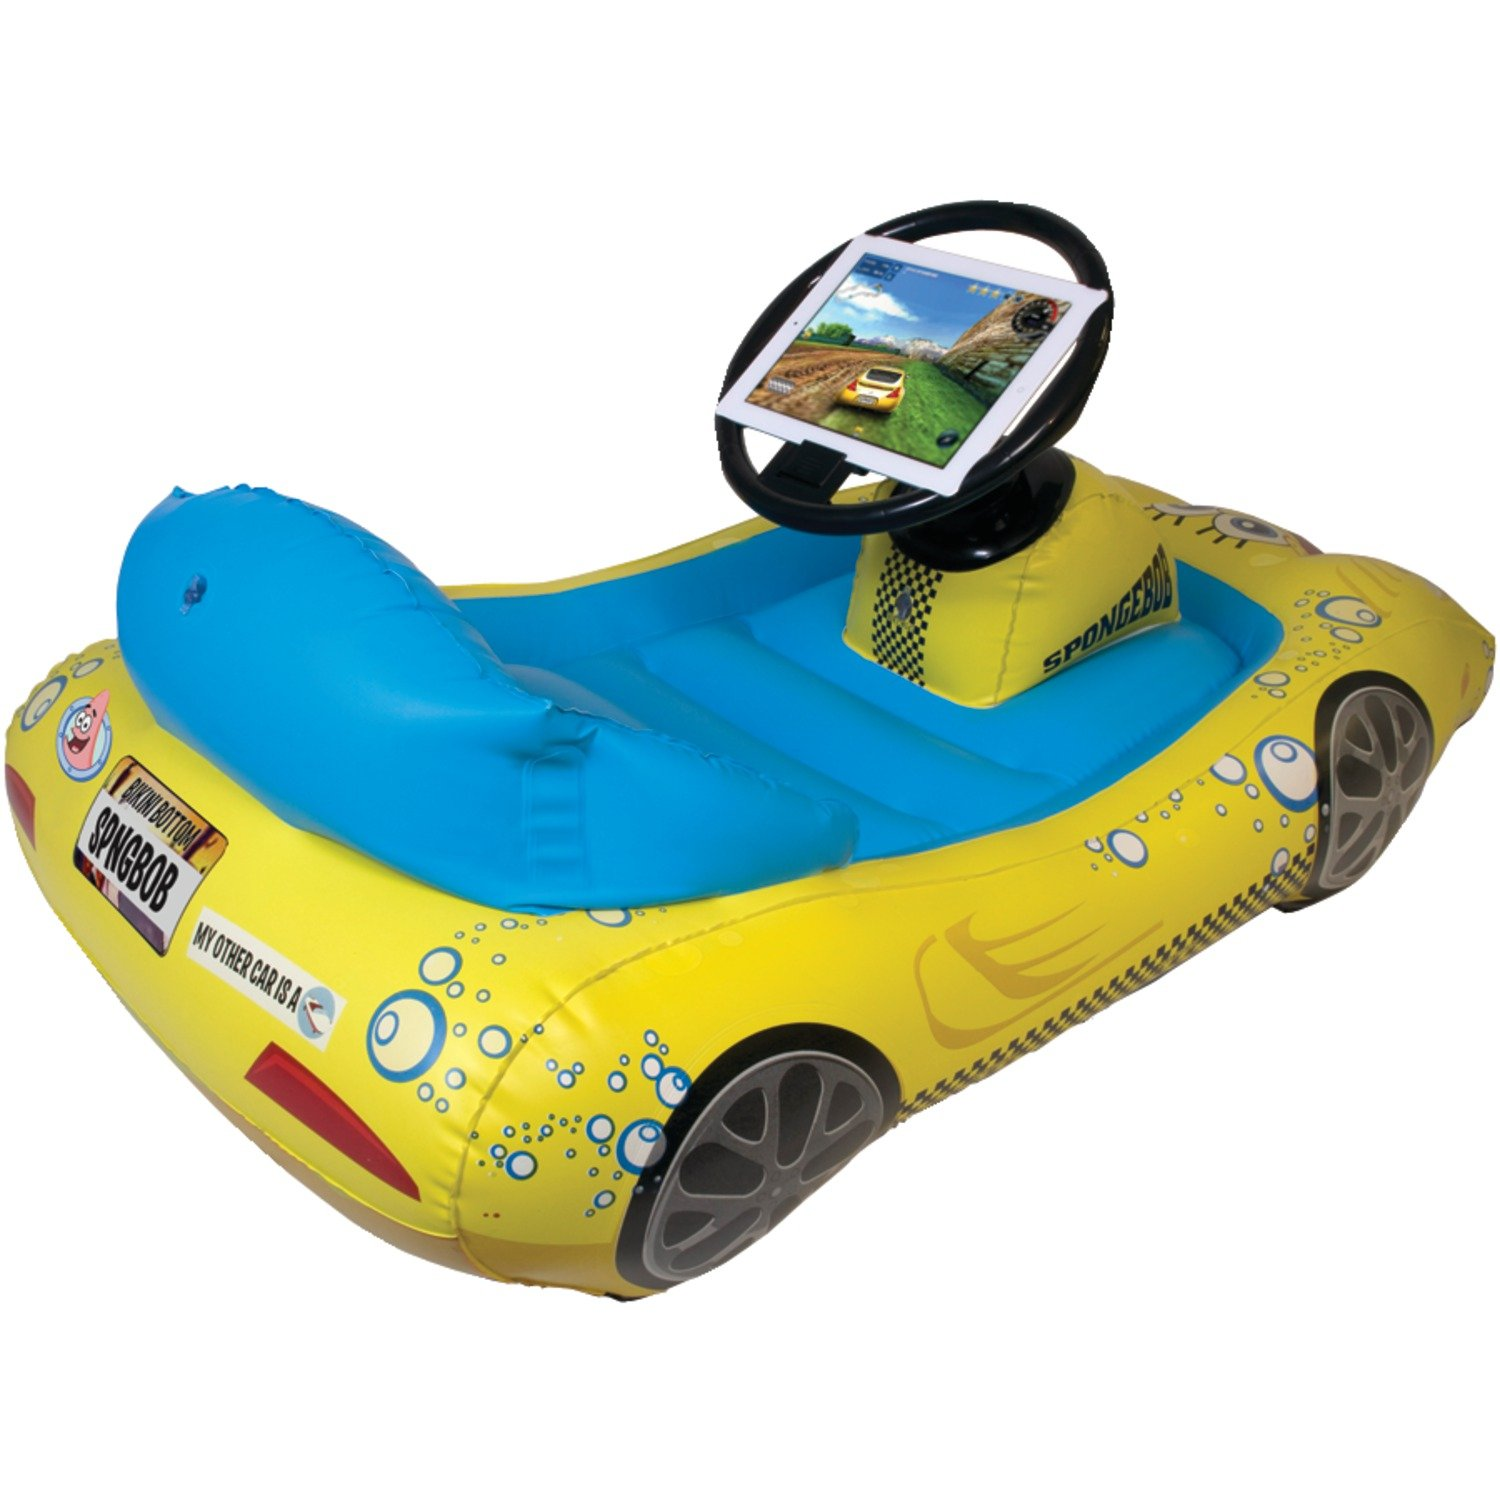 SpongeBob SquarePants Inflatable Sports Car for iPad by CTA Digital